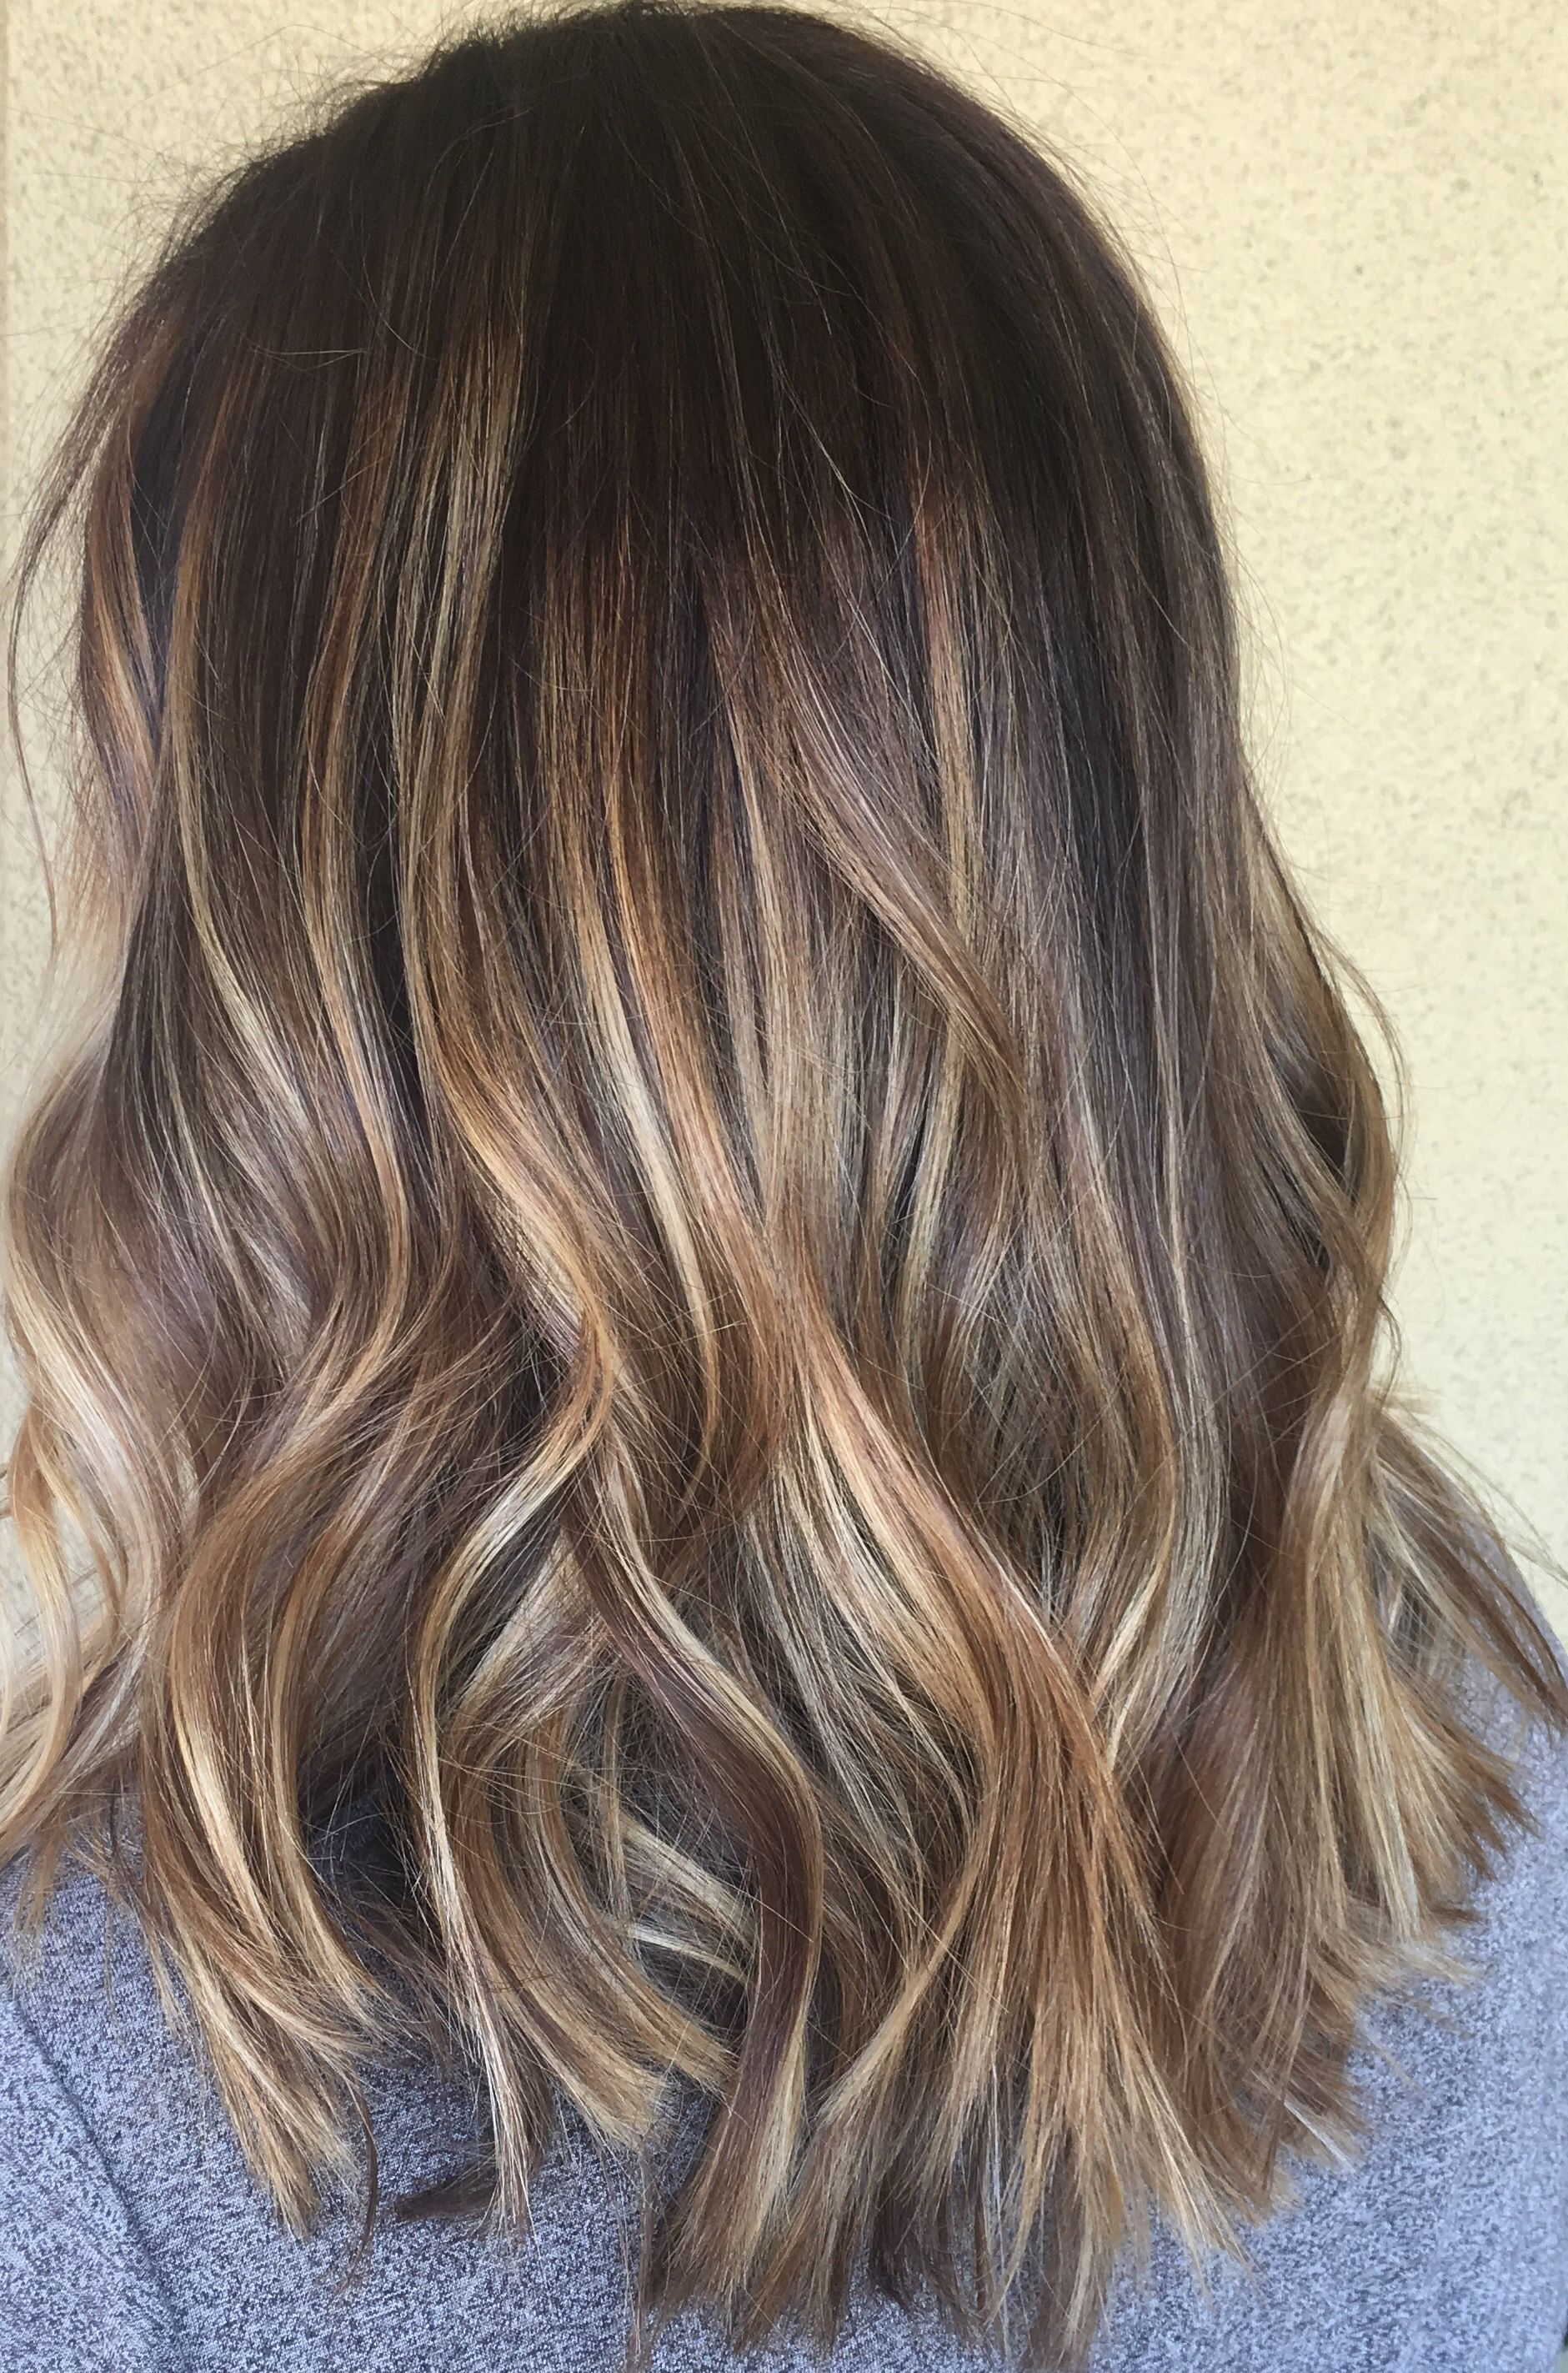 sun kissed balayage by genna khein hair colors pinterest balayage. Black Bedroom Furniture Sets. Home Design Ideas